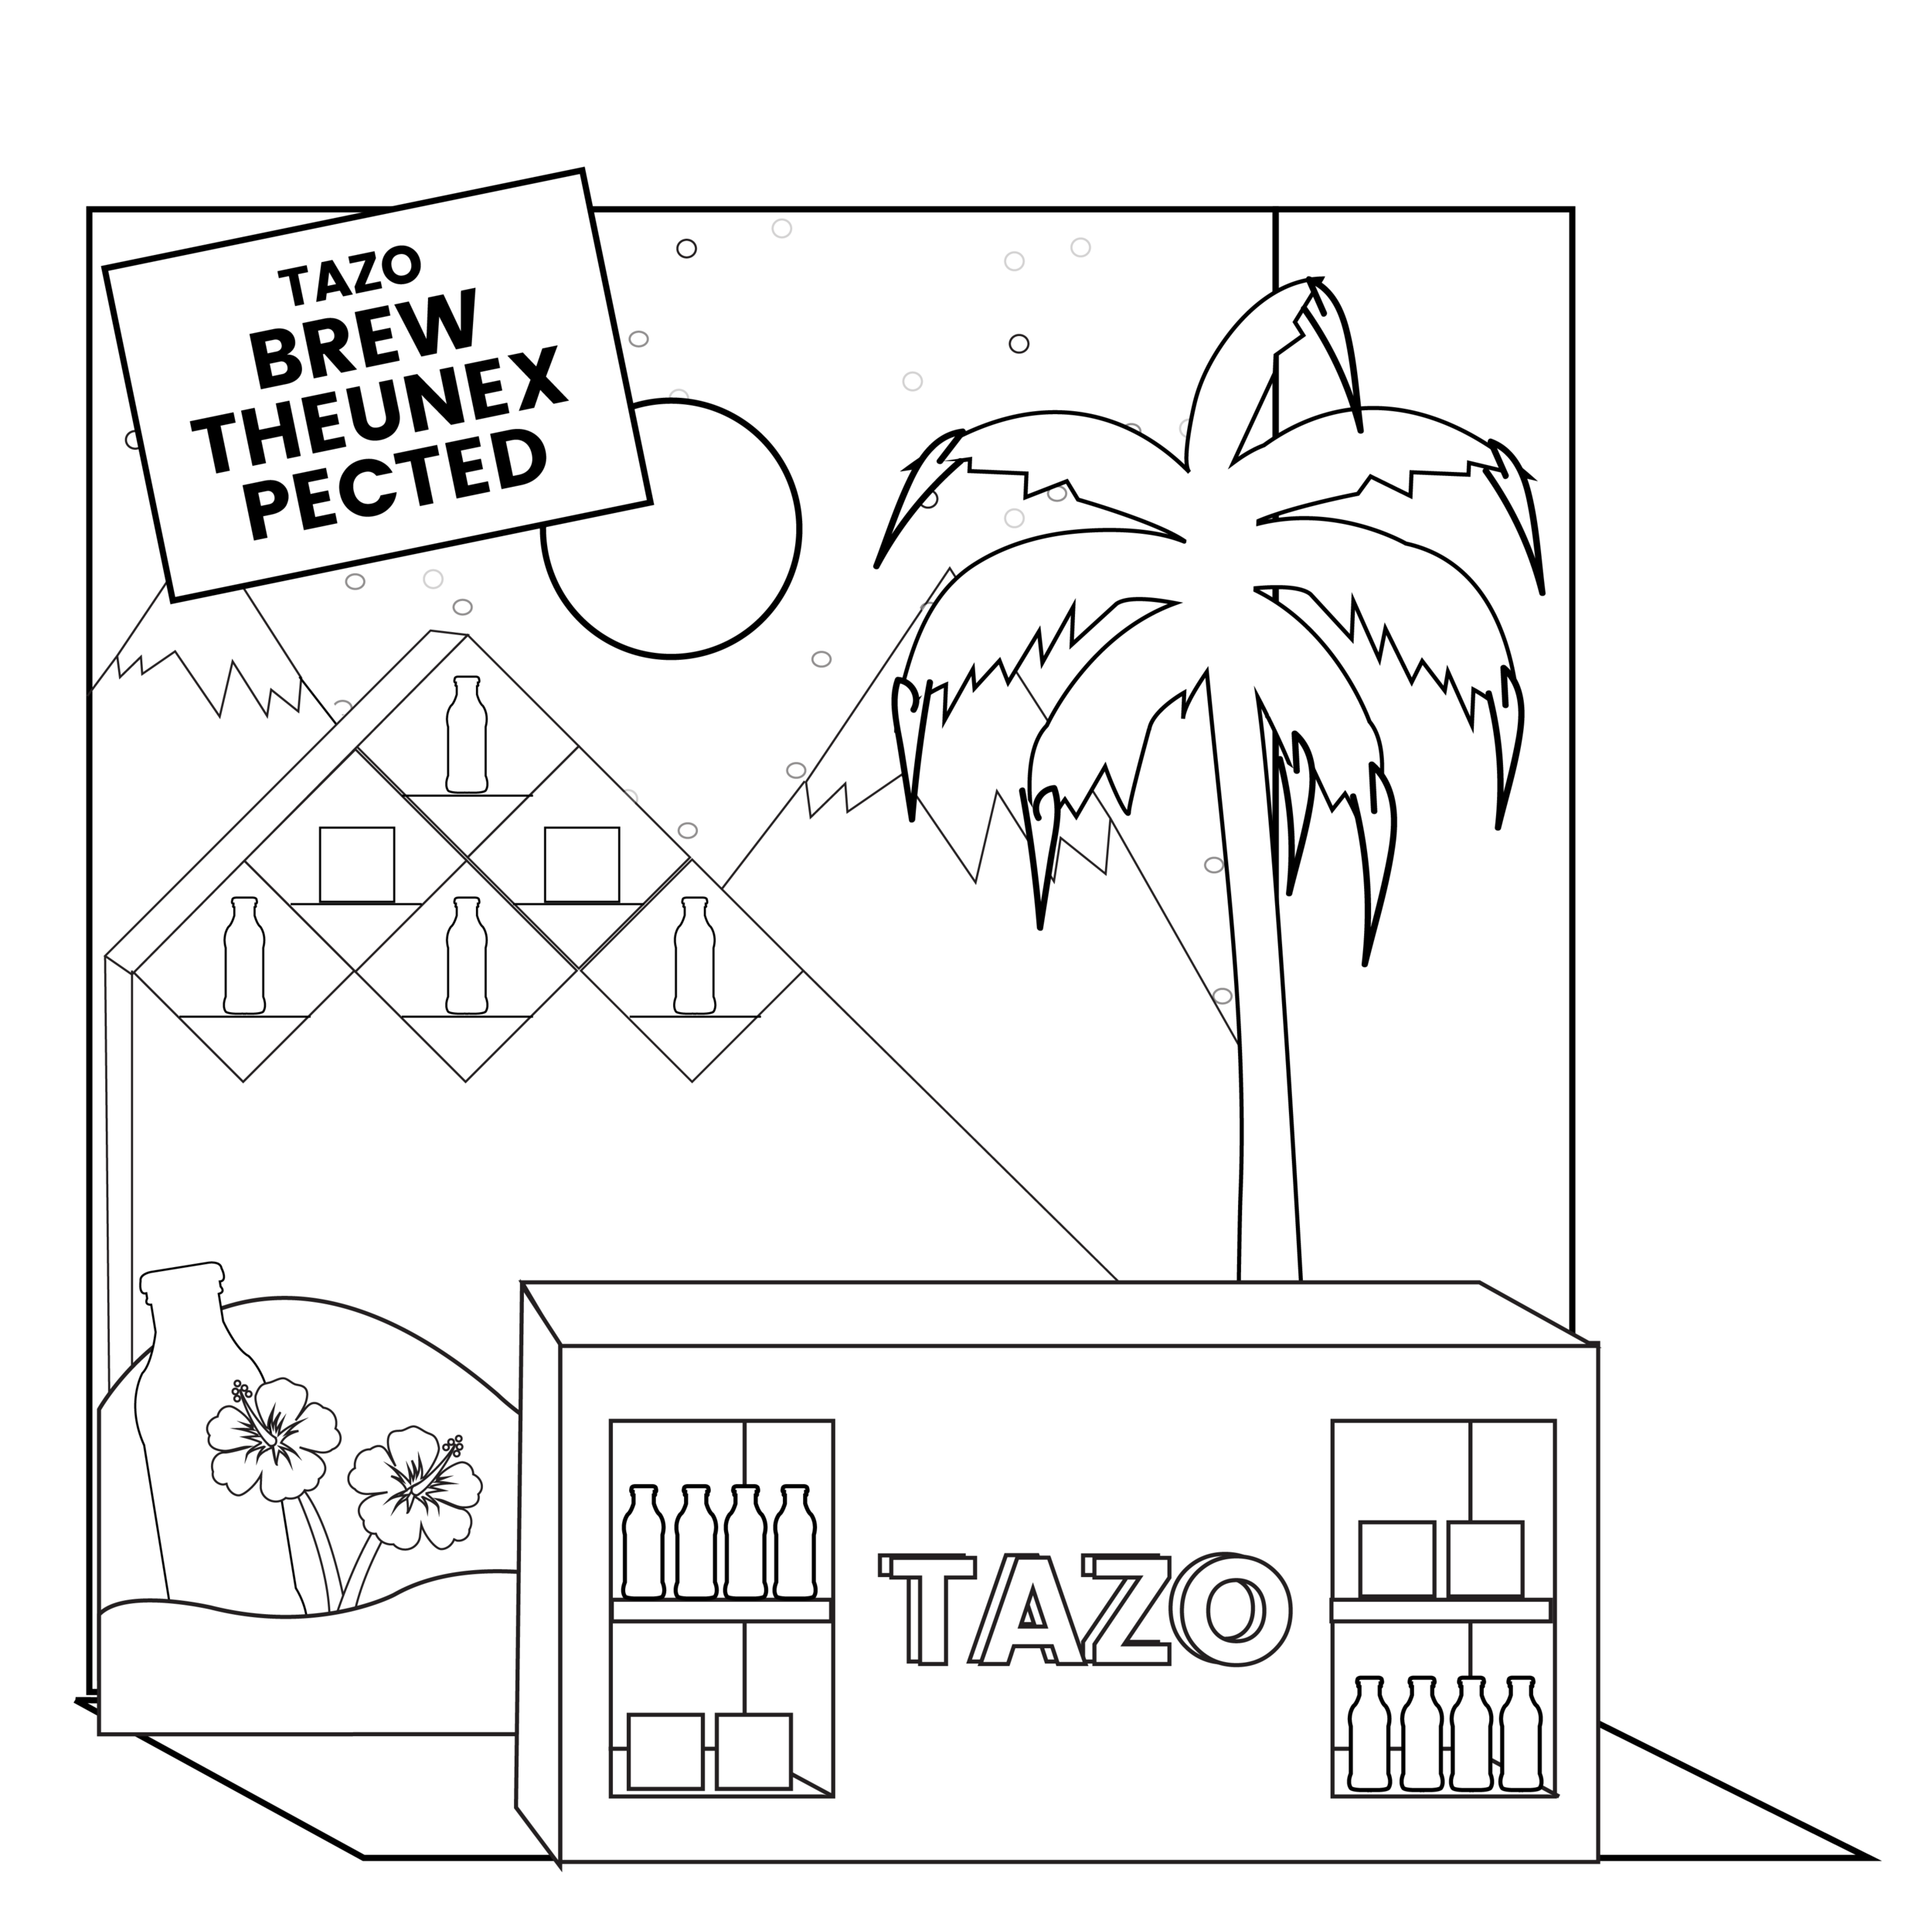 TAZO_EXPOWEST_FOOTPRINT_R1c-01.png